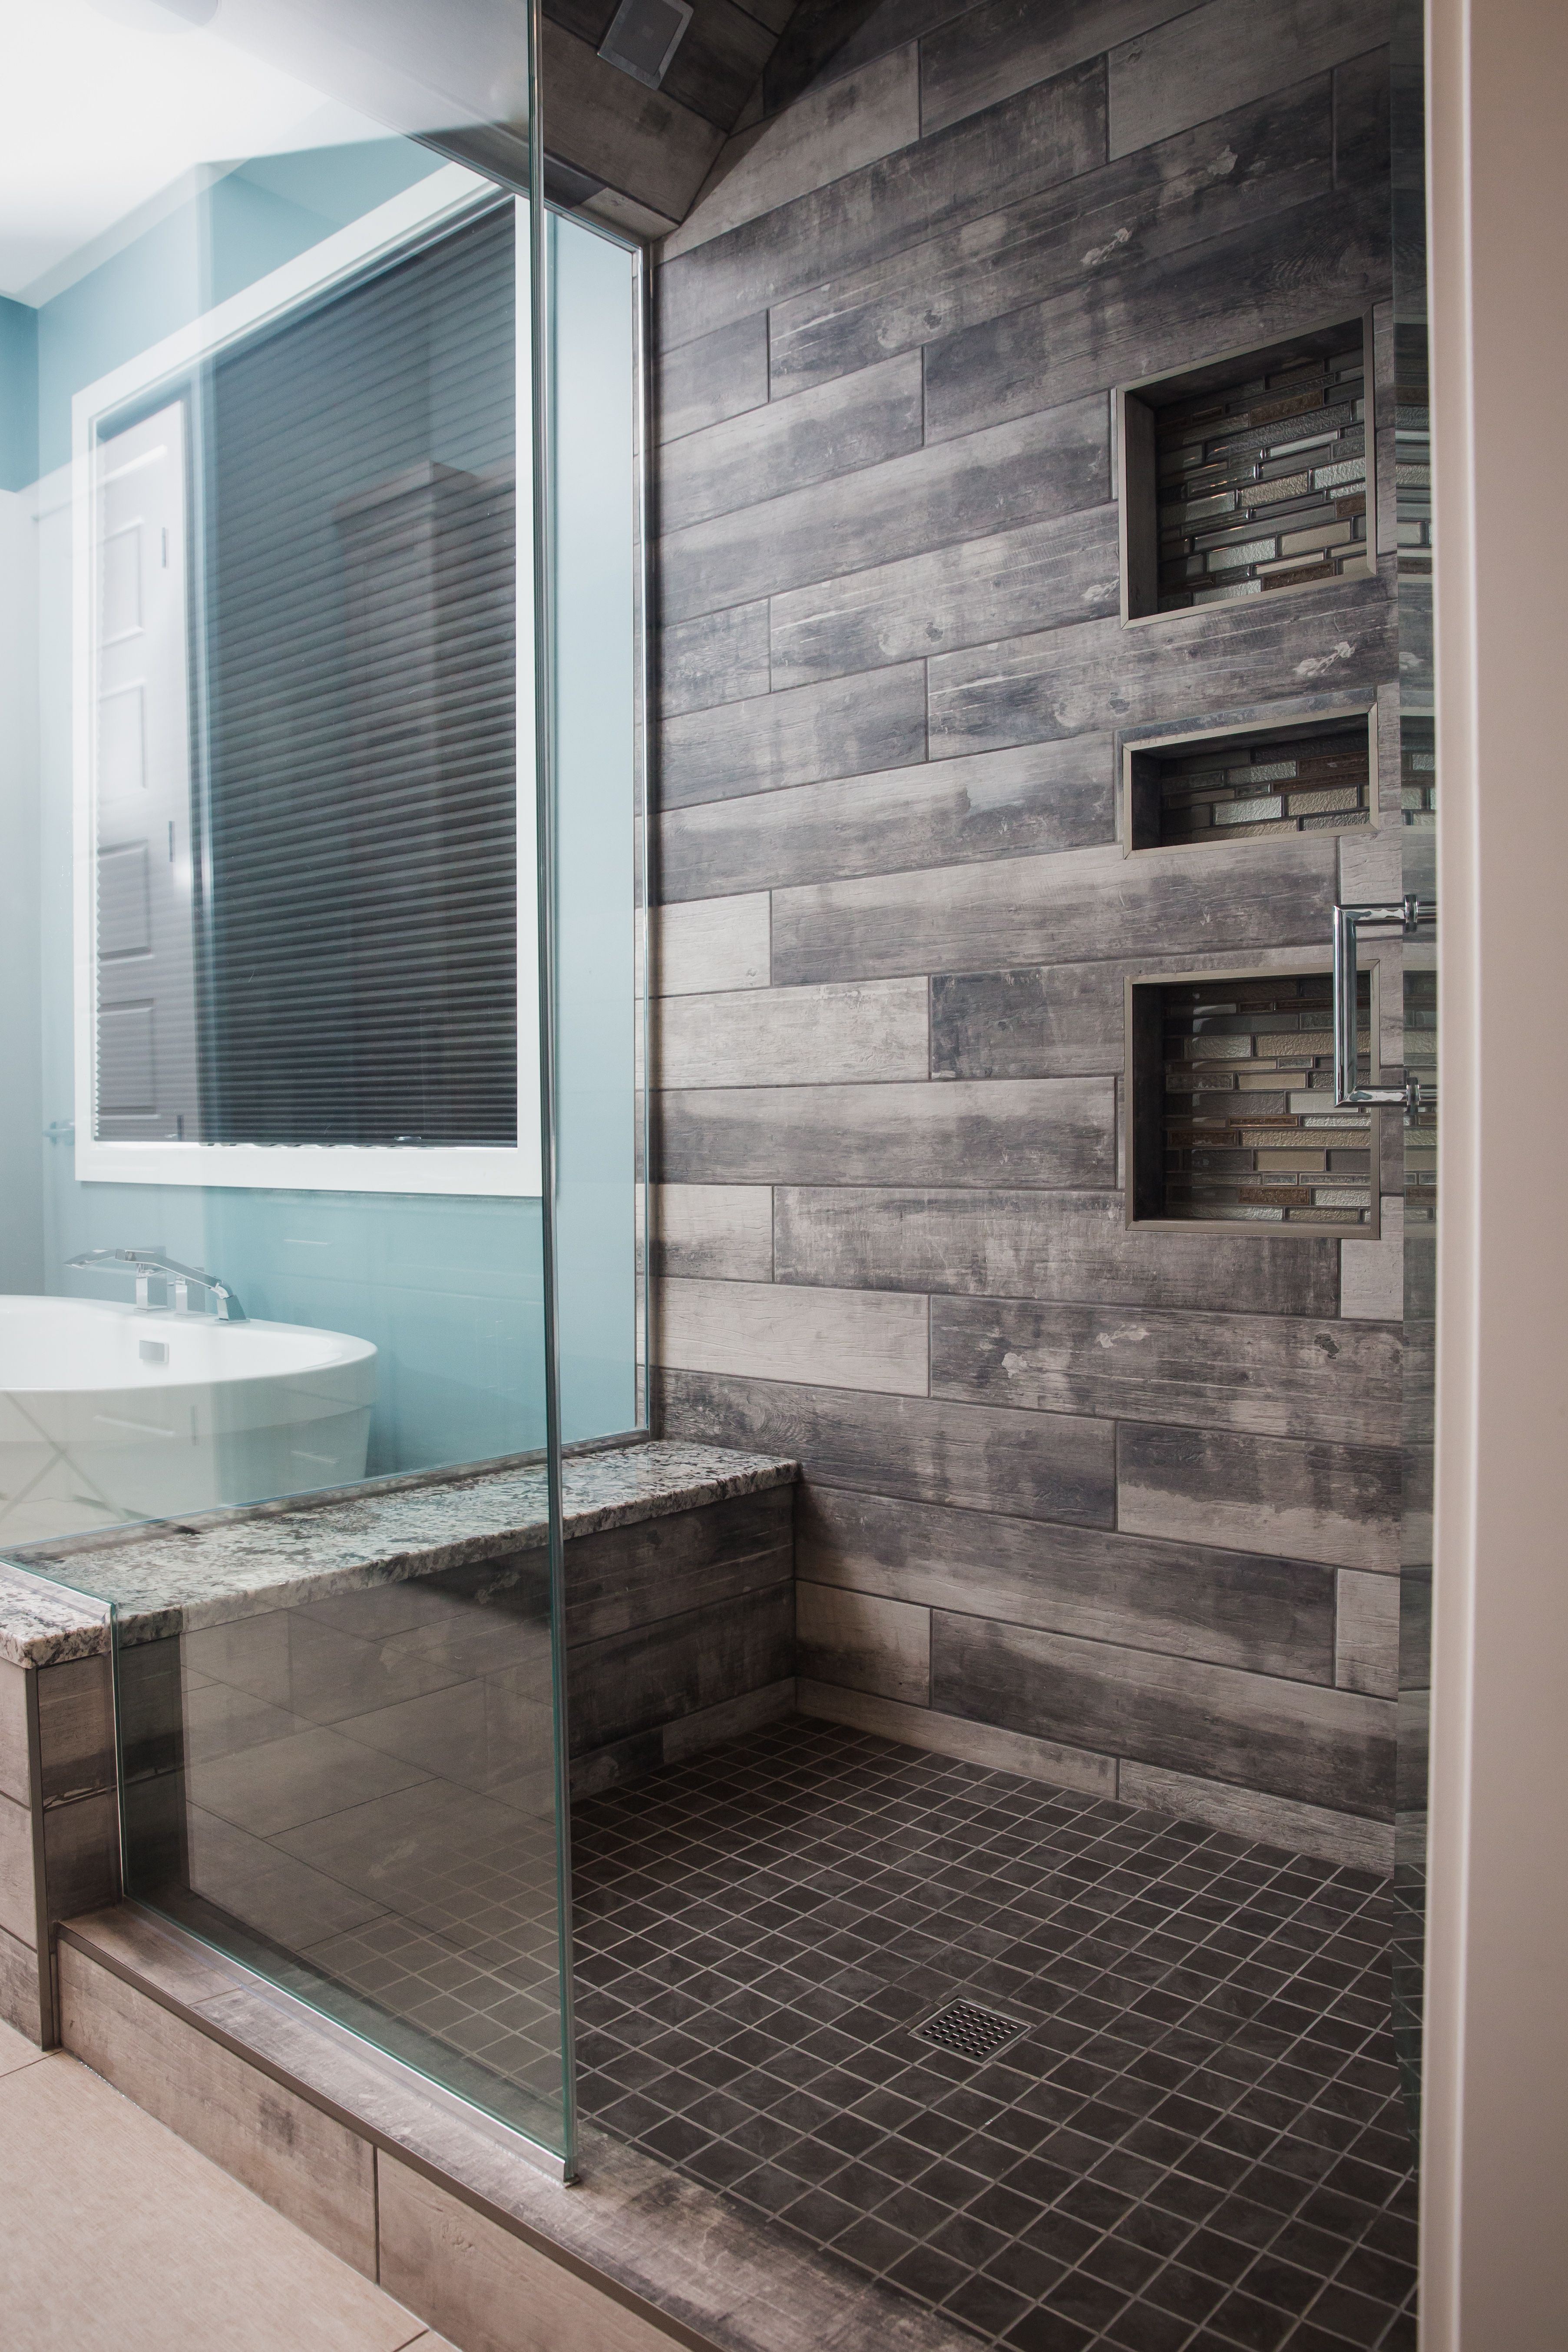 Amazing bathroom walk in shower featuring york wood manor tile color birch tree from dal granite bench with full enclosed glass walls home by neuhaven also contemporary boasts  gray subway tiled ceiling and